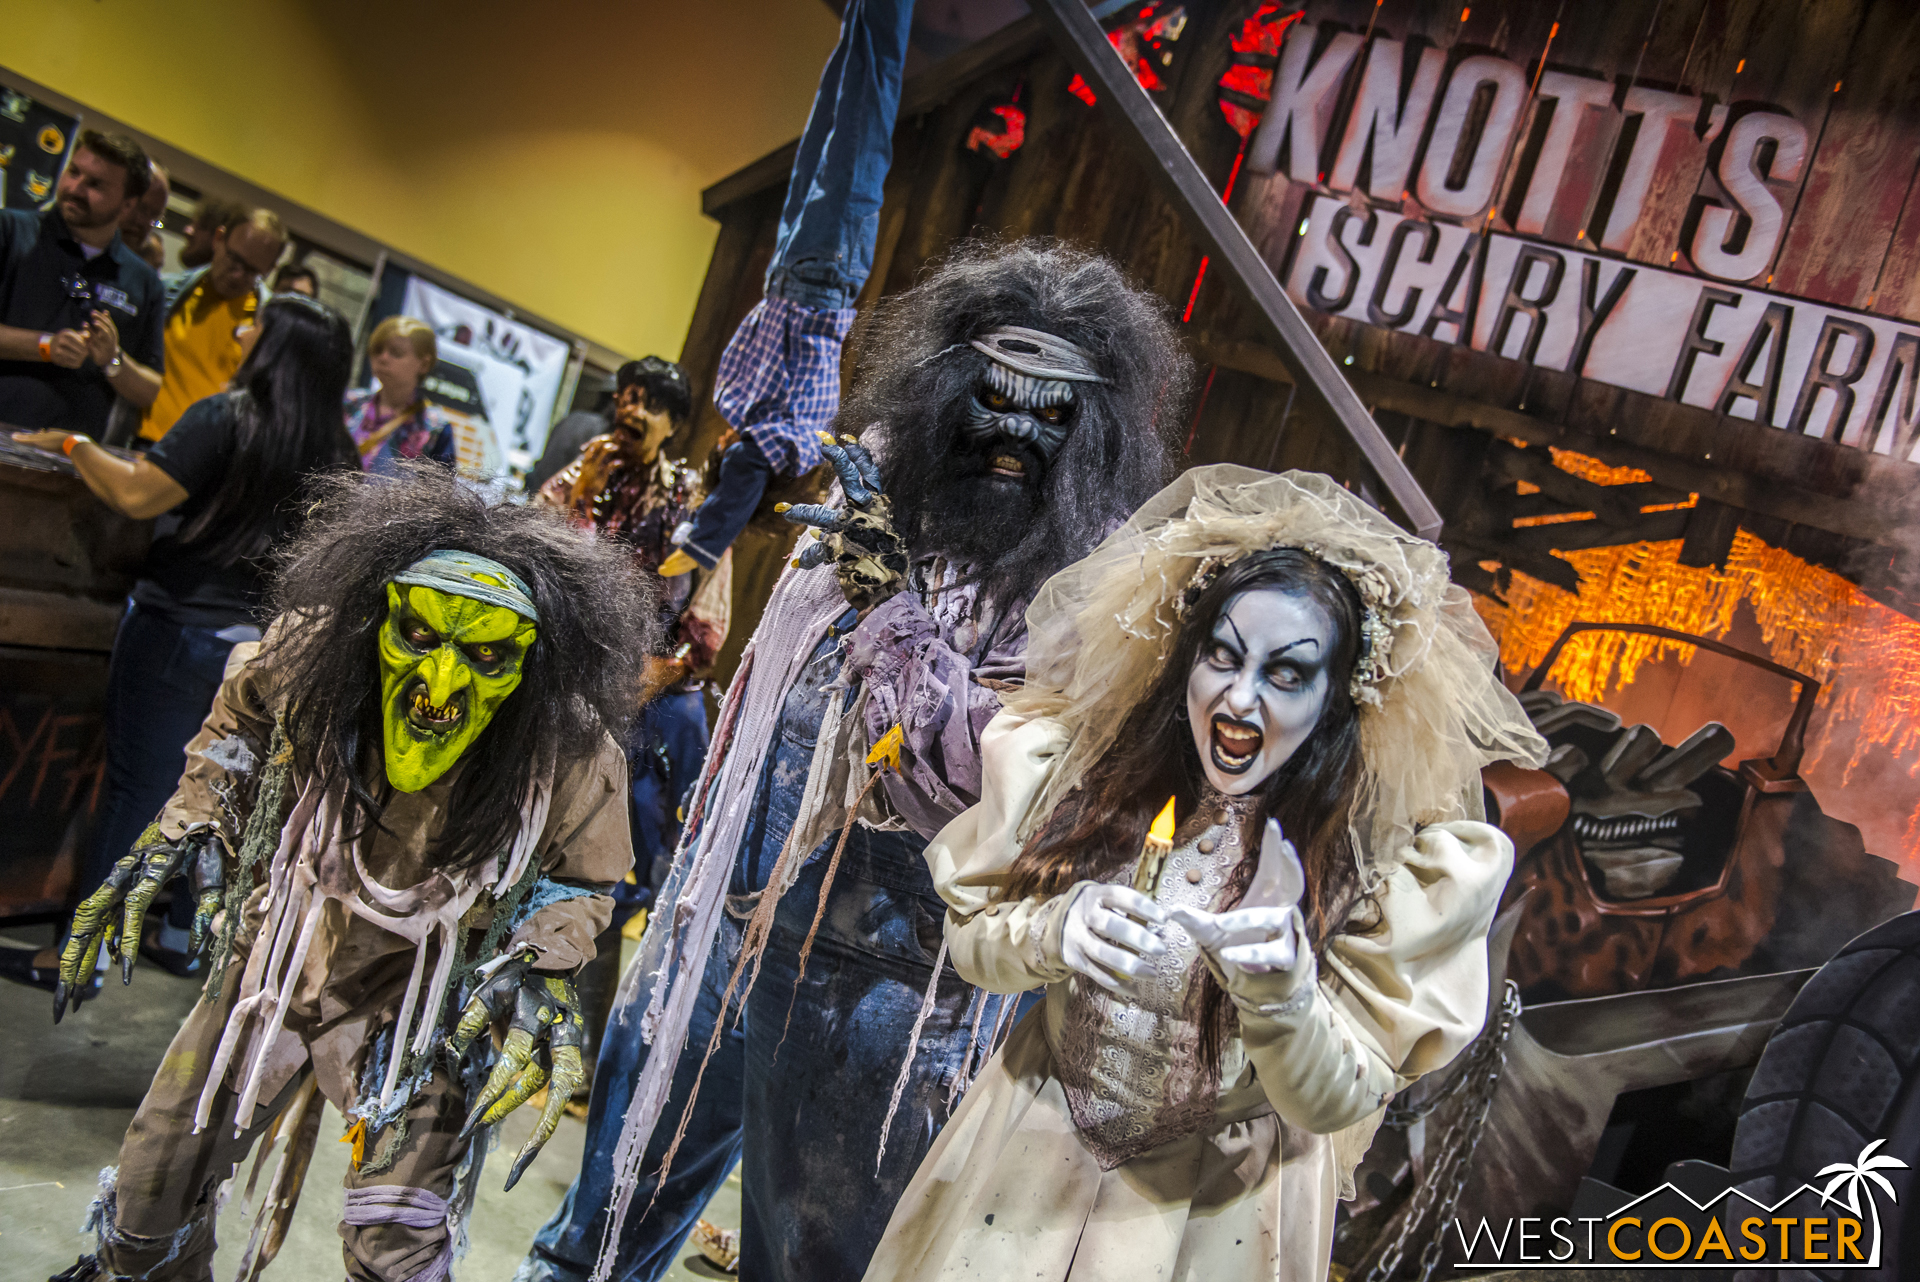 Some iconic and long-running Knott's Scary Farm faces greeted guests/victims passing by the Knott's Scary Farm booth in the exhibition hall.